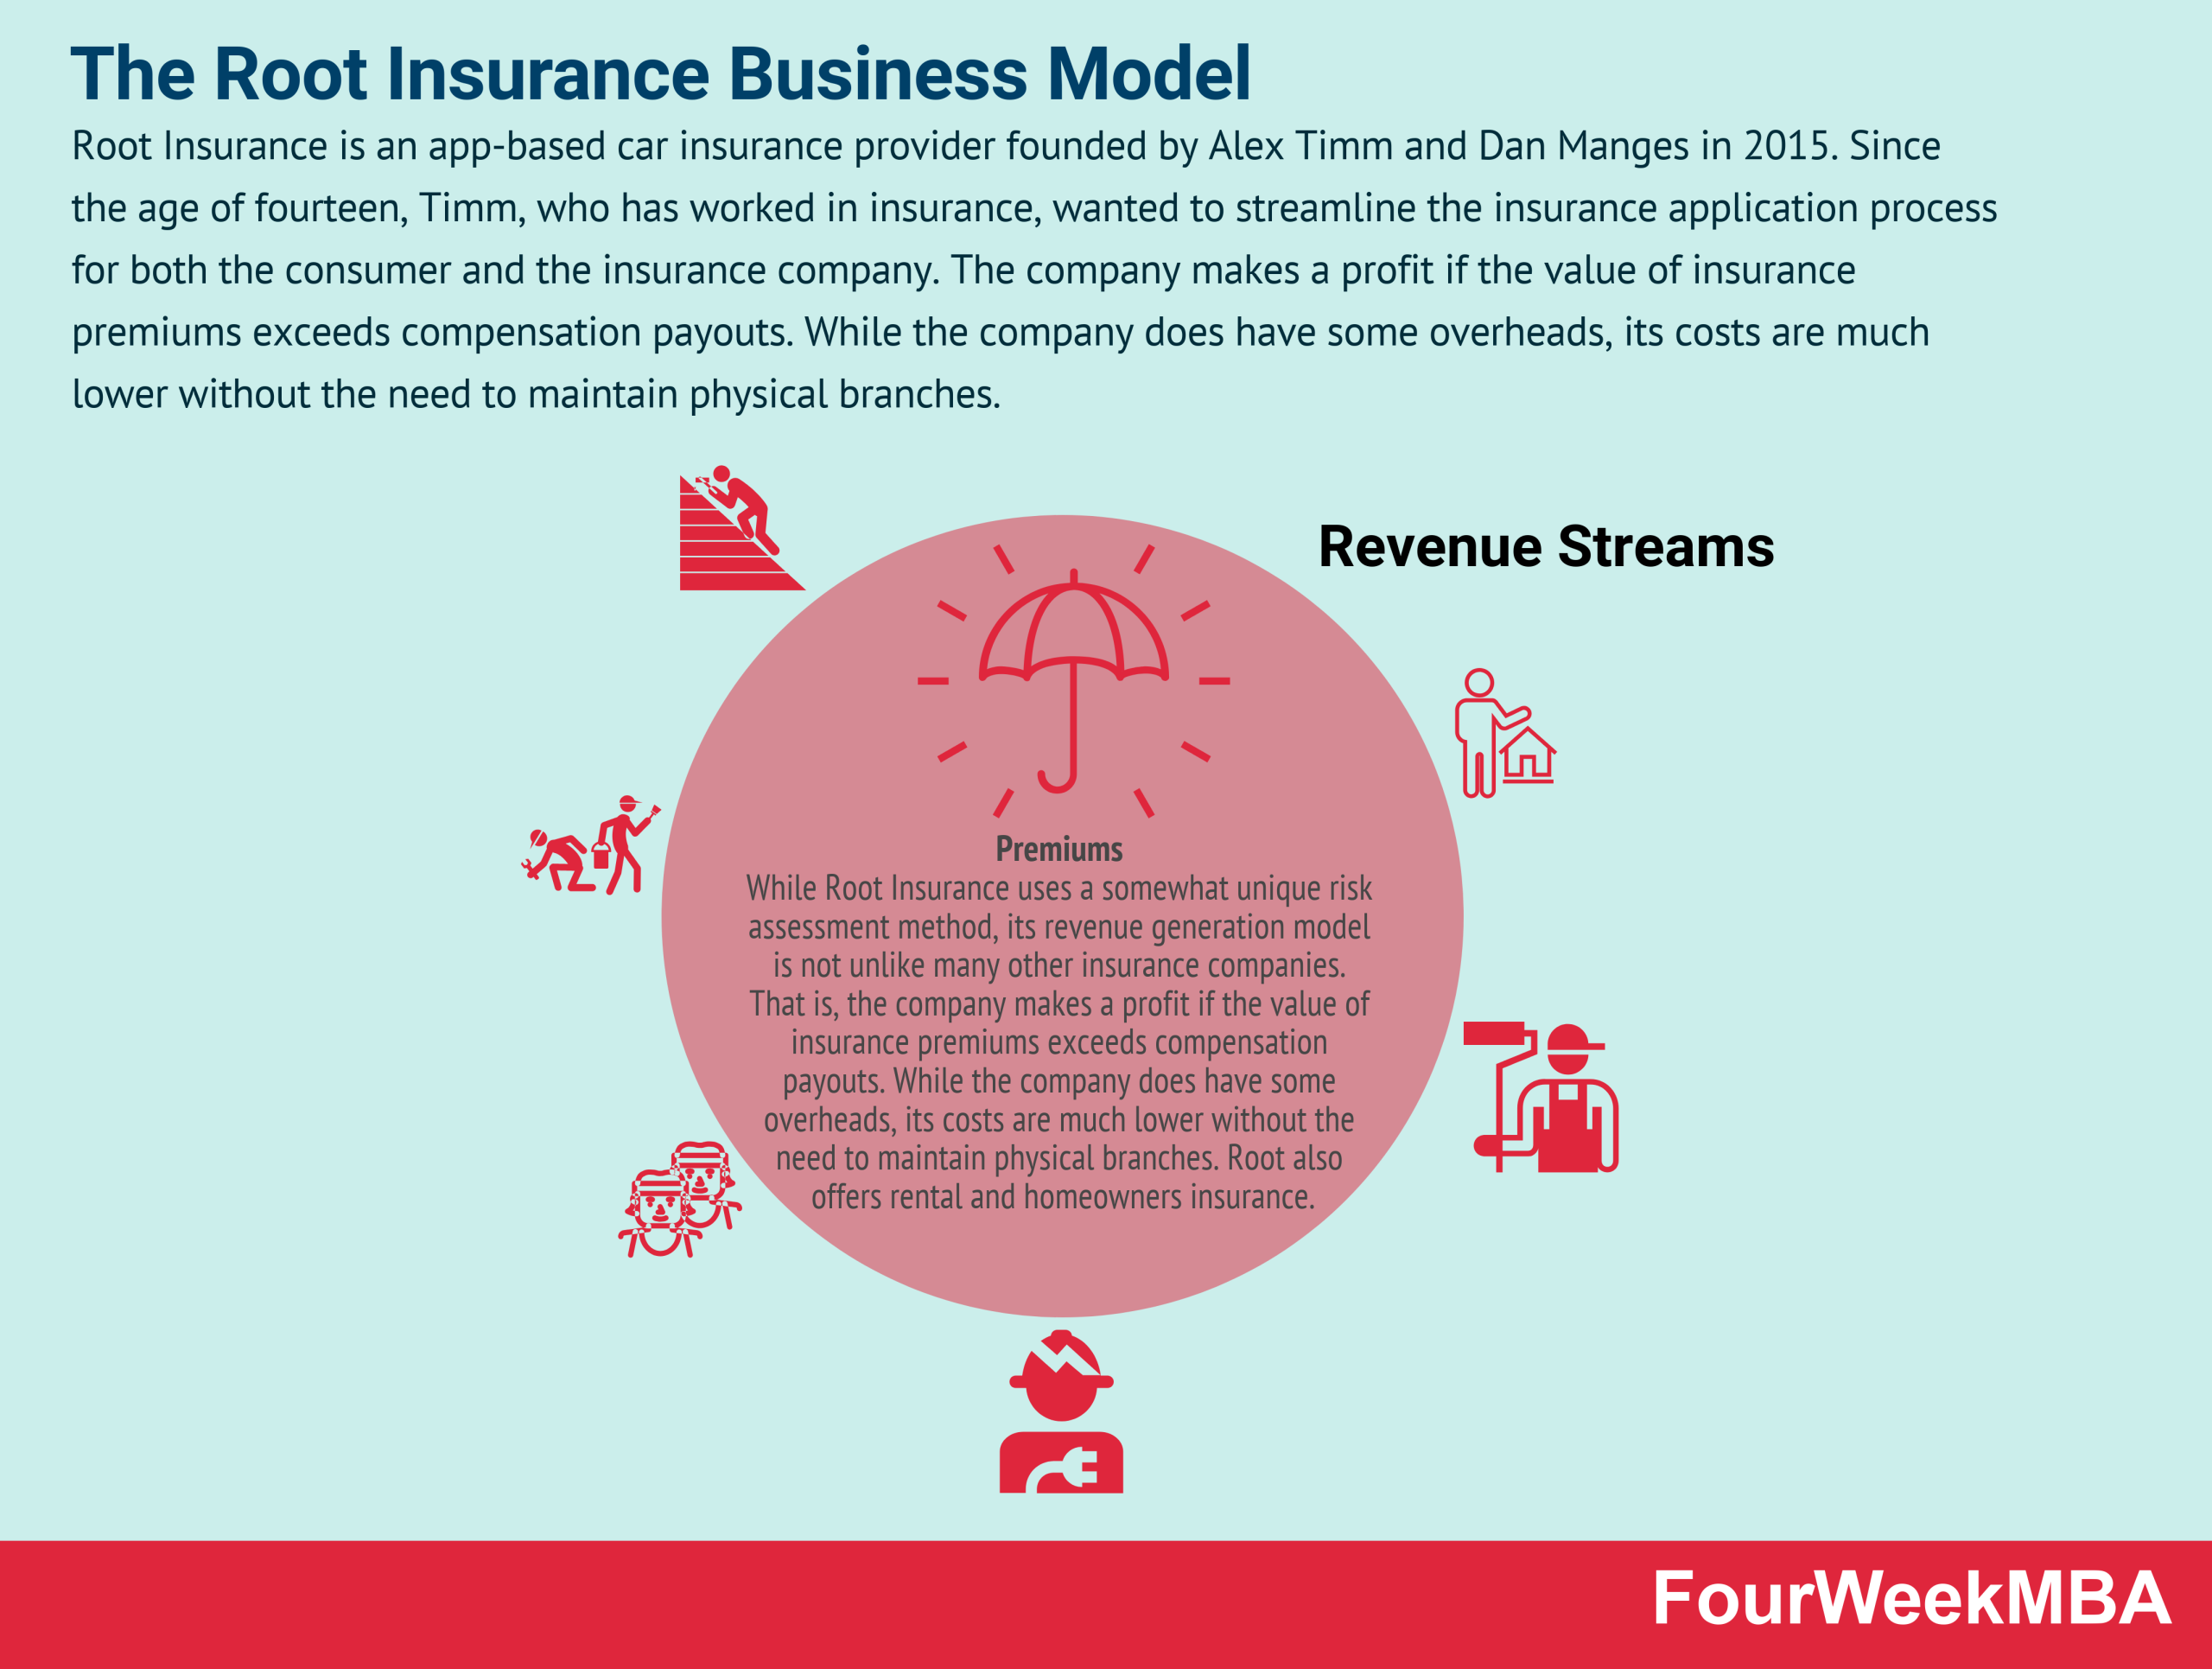 how-does-root-insurance-make-money-the-root-insurance-business-model